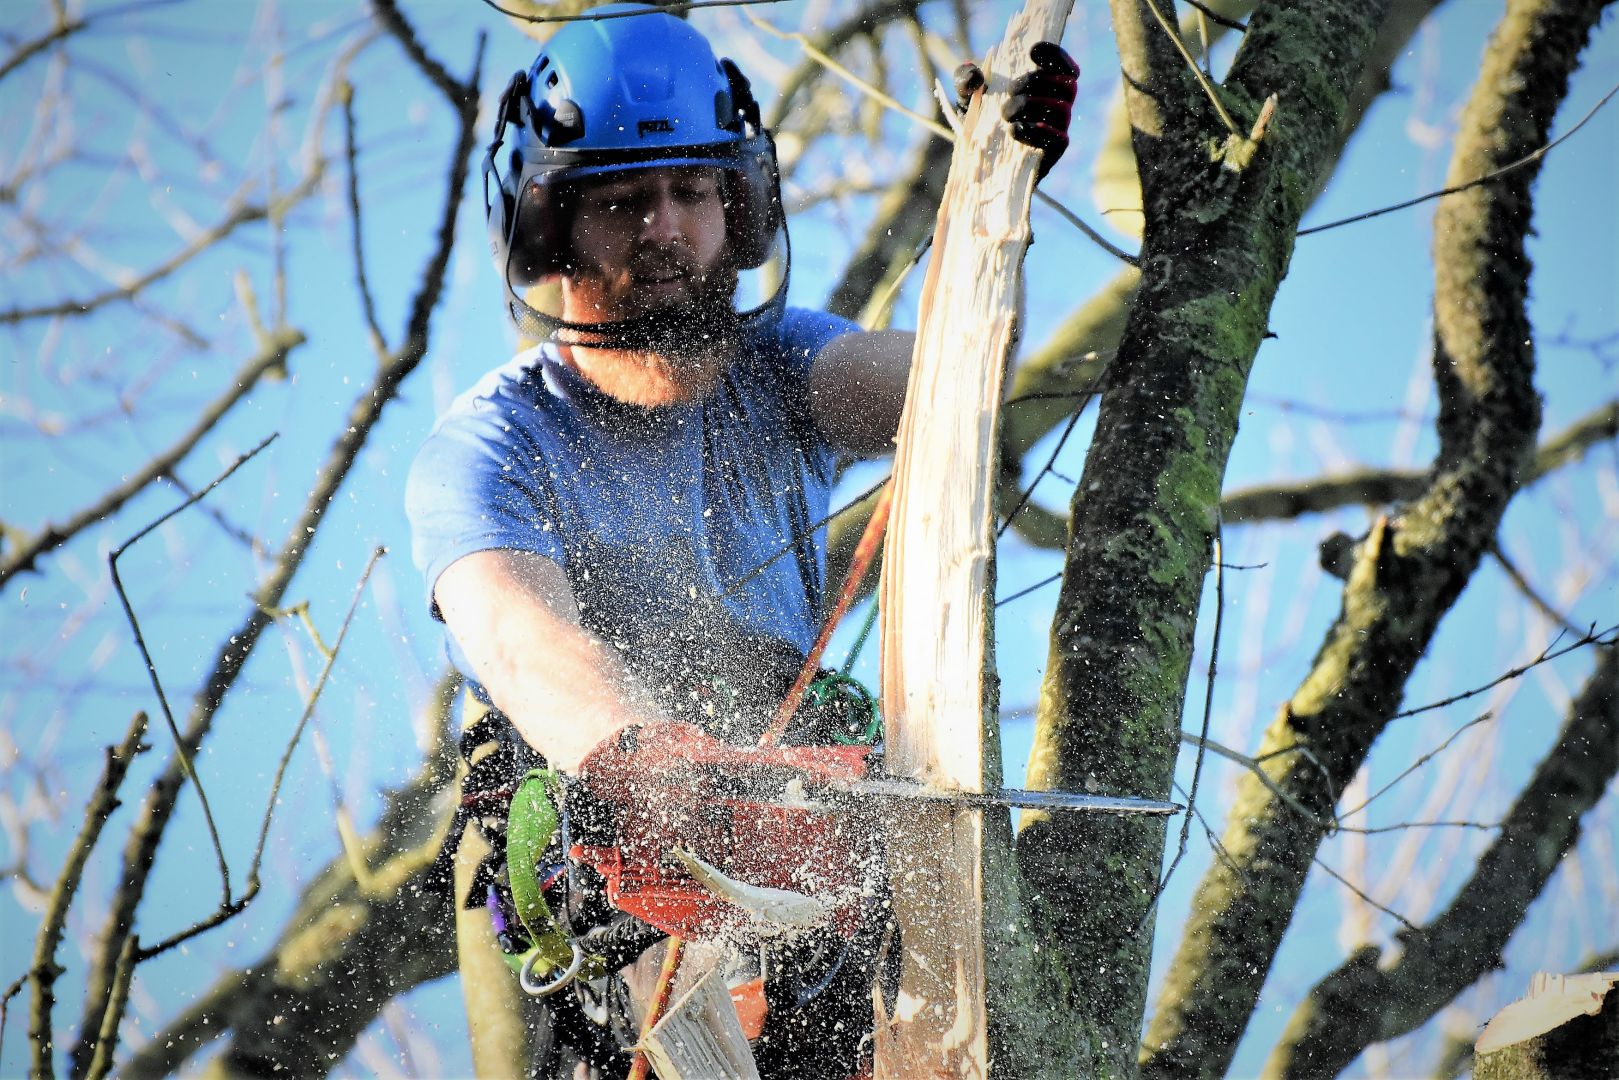 emergency tree work, Weymouth tree surgery, Weymouth tree surgeons, tree surgeons Weymouth, storm damage, clearing storm damage, arborist, climbing arborist, emergency tree work, tree safety work